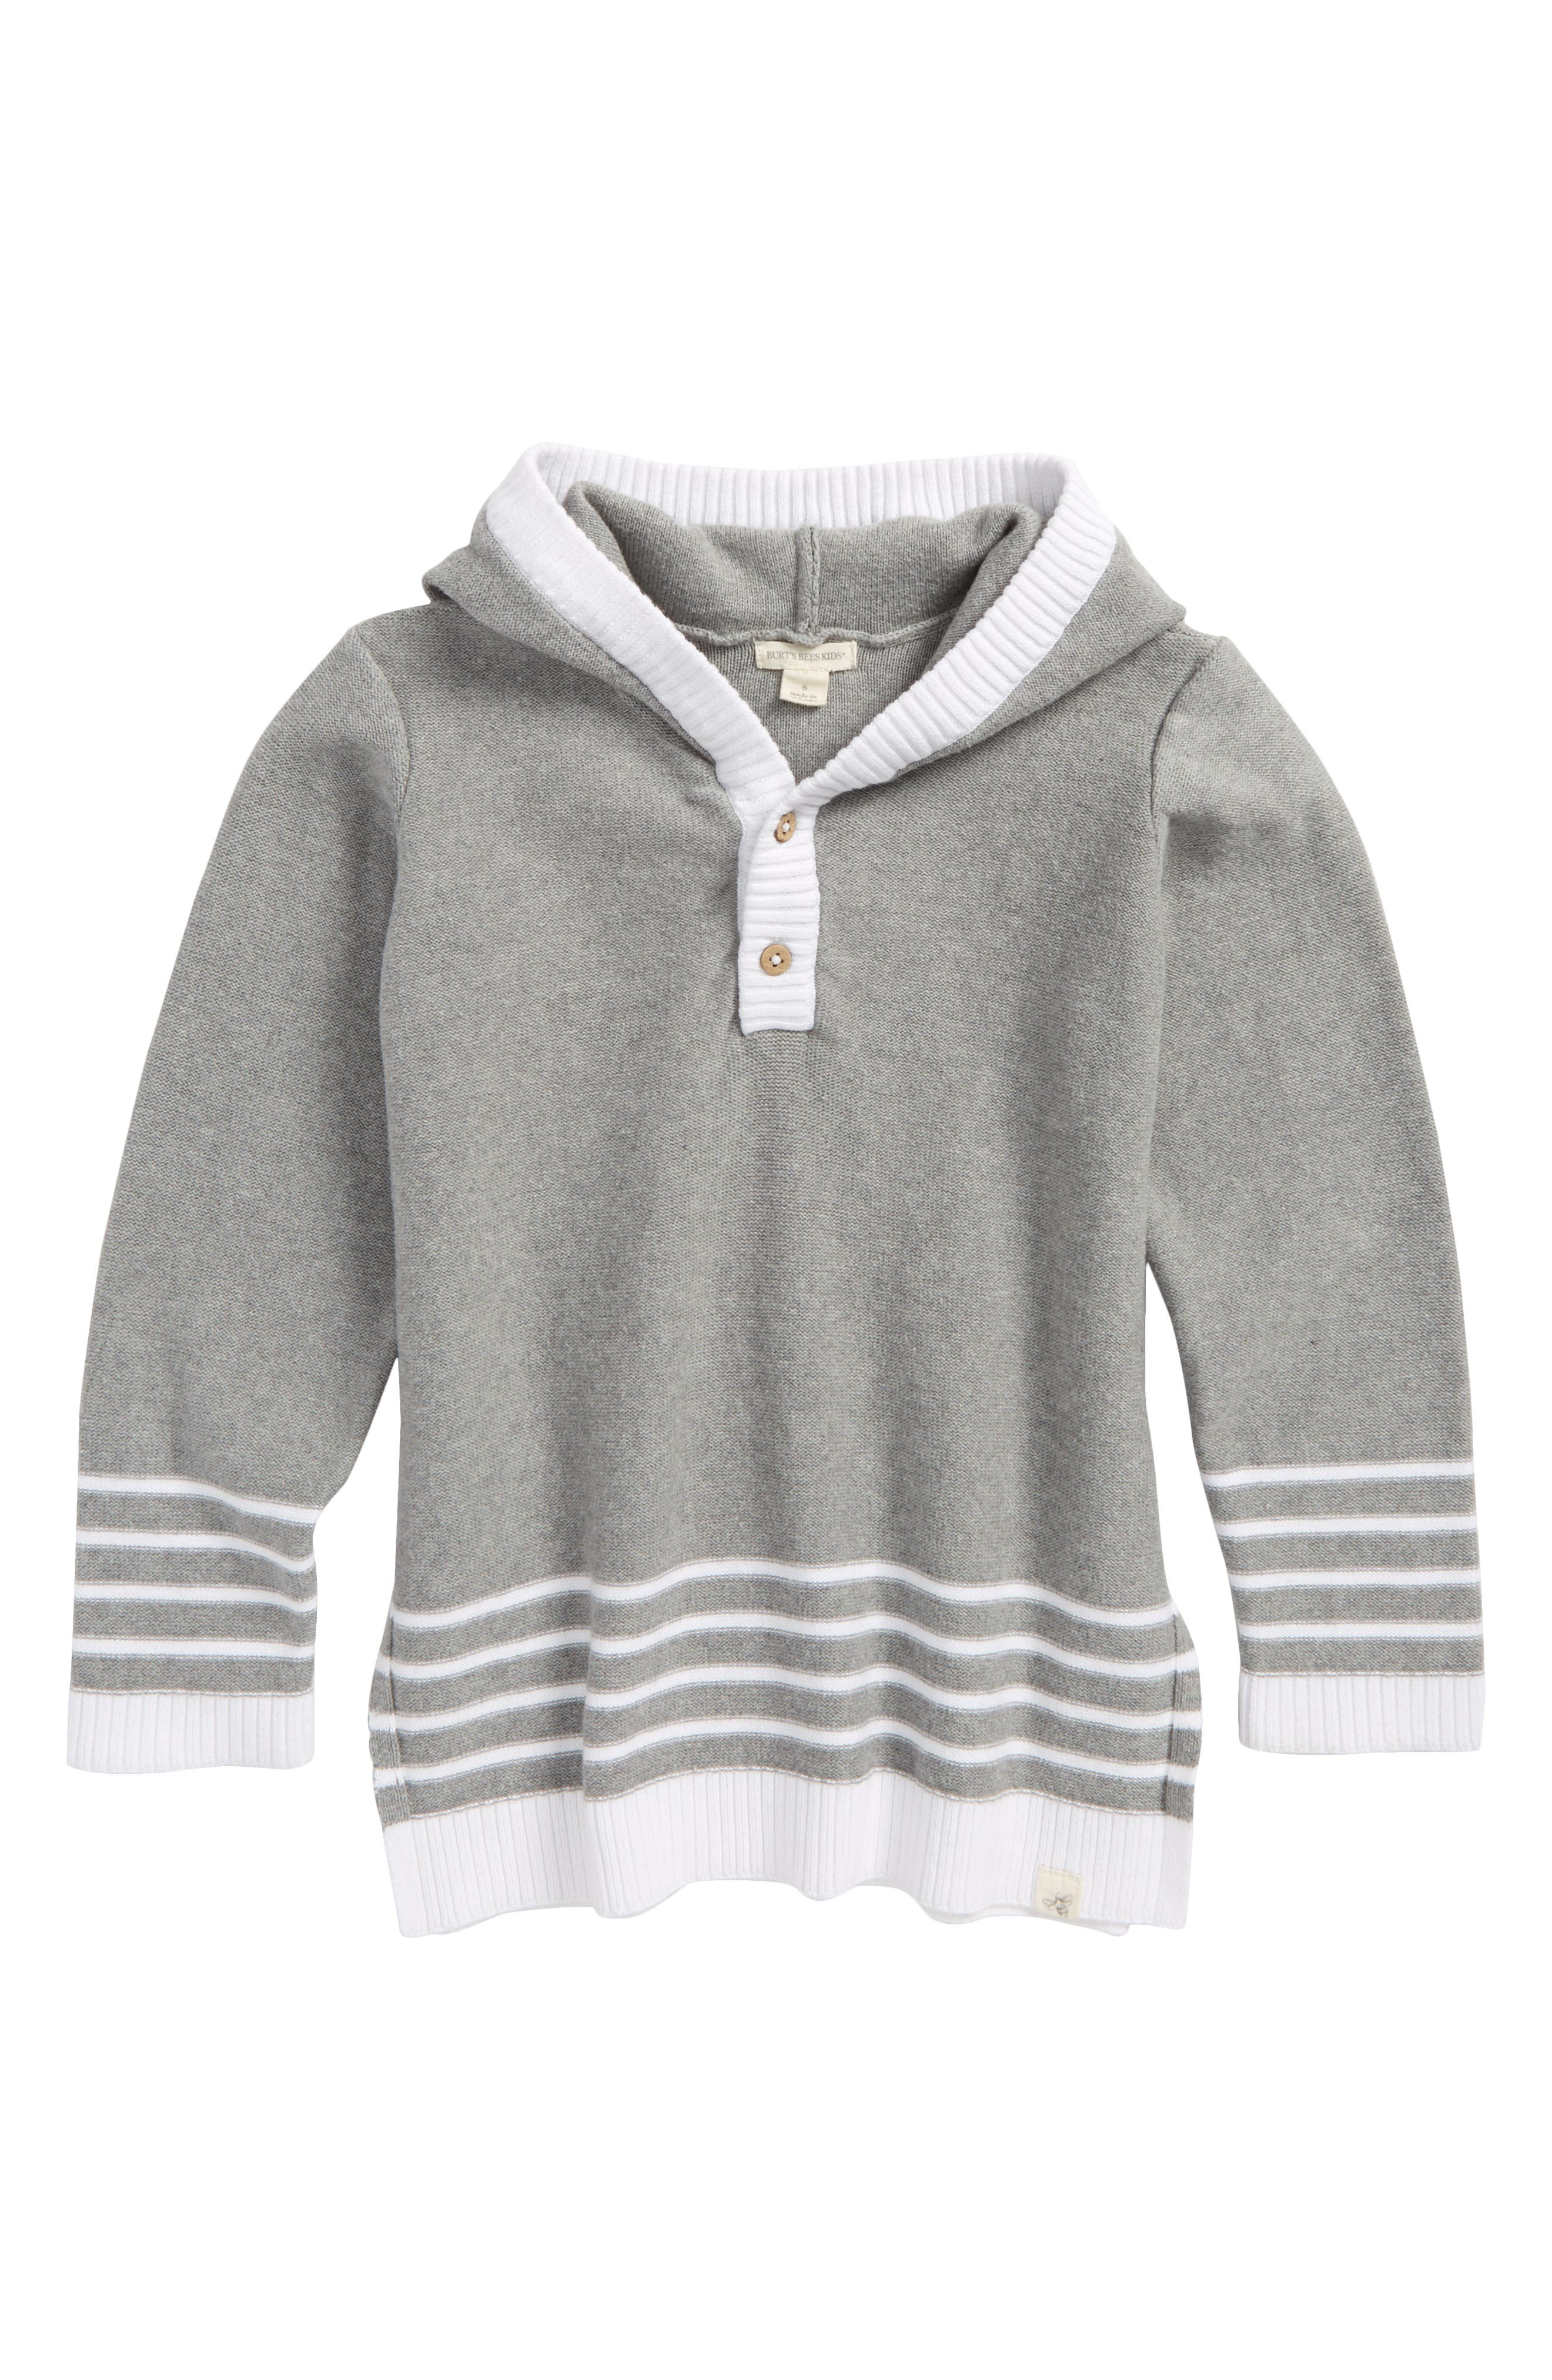 Kids' Sweaters Apparel: T-Shirts, Jeans, Pants & Hoodies | Nordstrom